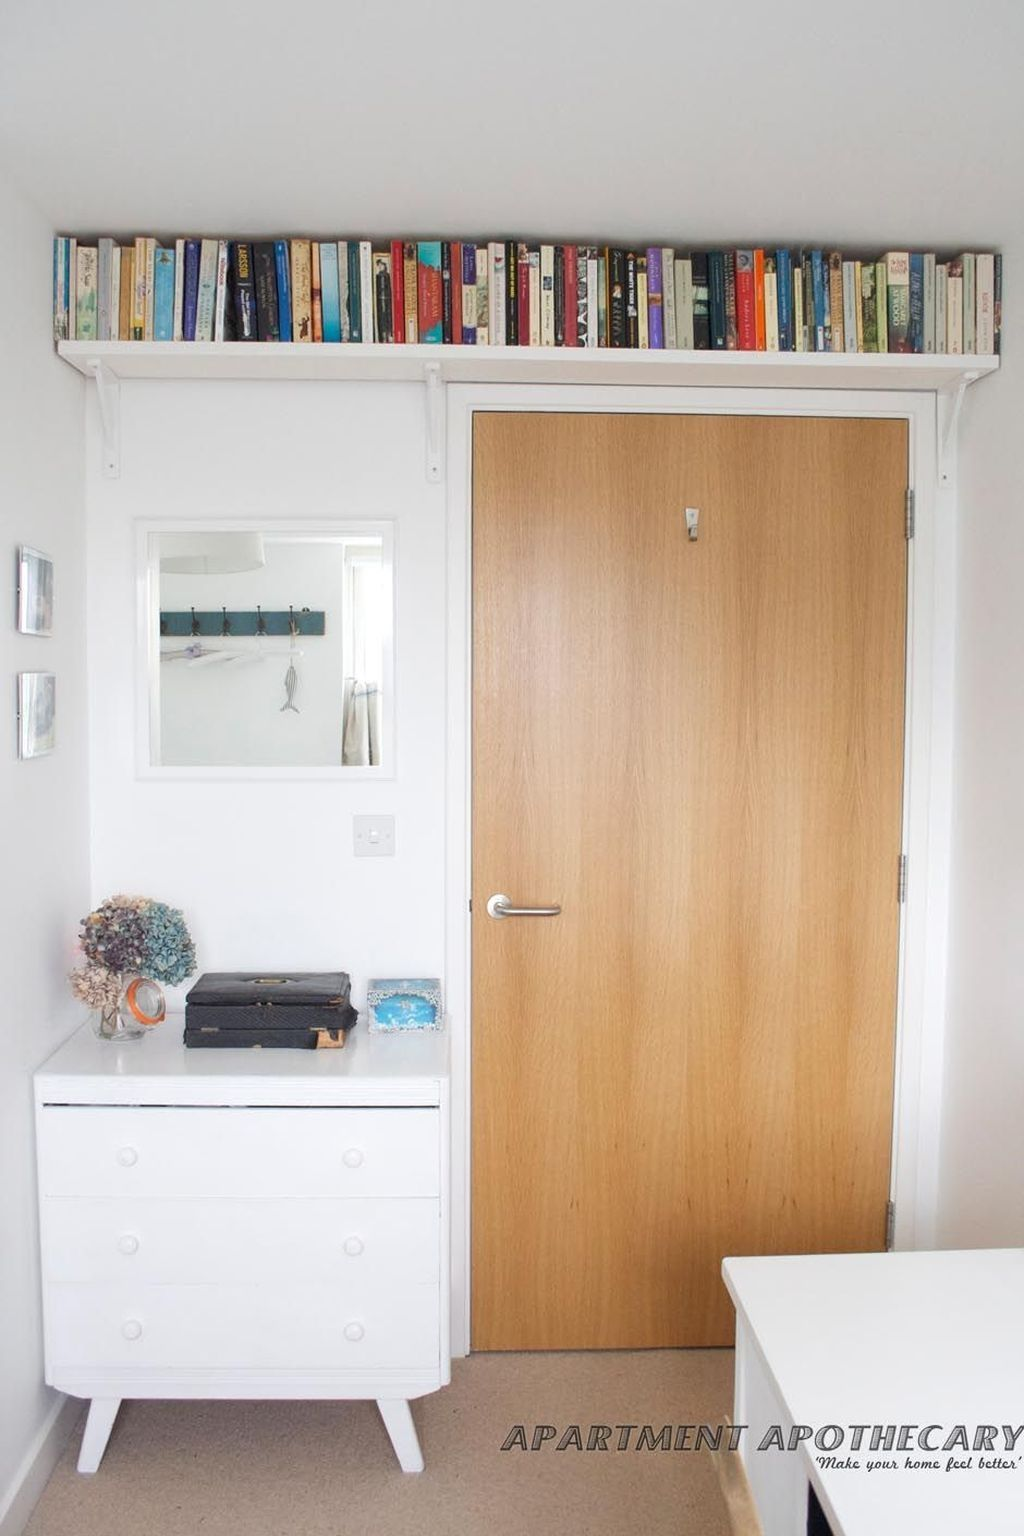 30 Creative Apartment Storage Ideas For Small Space Furniture